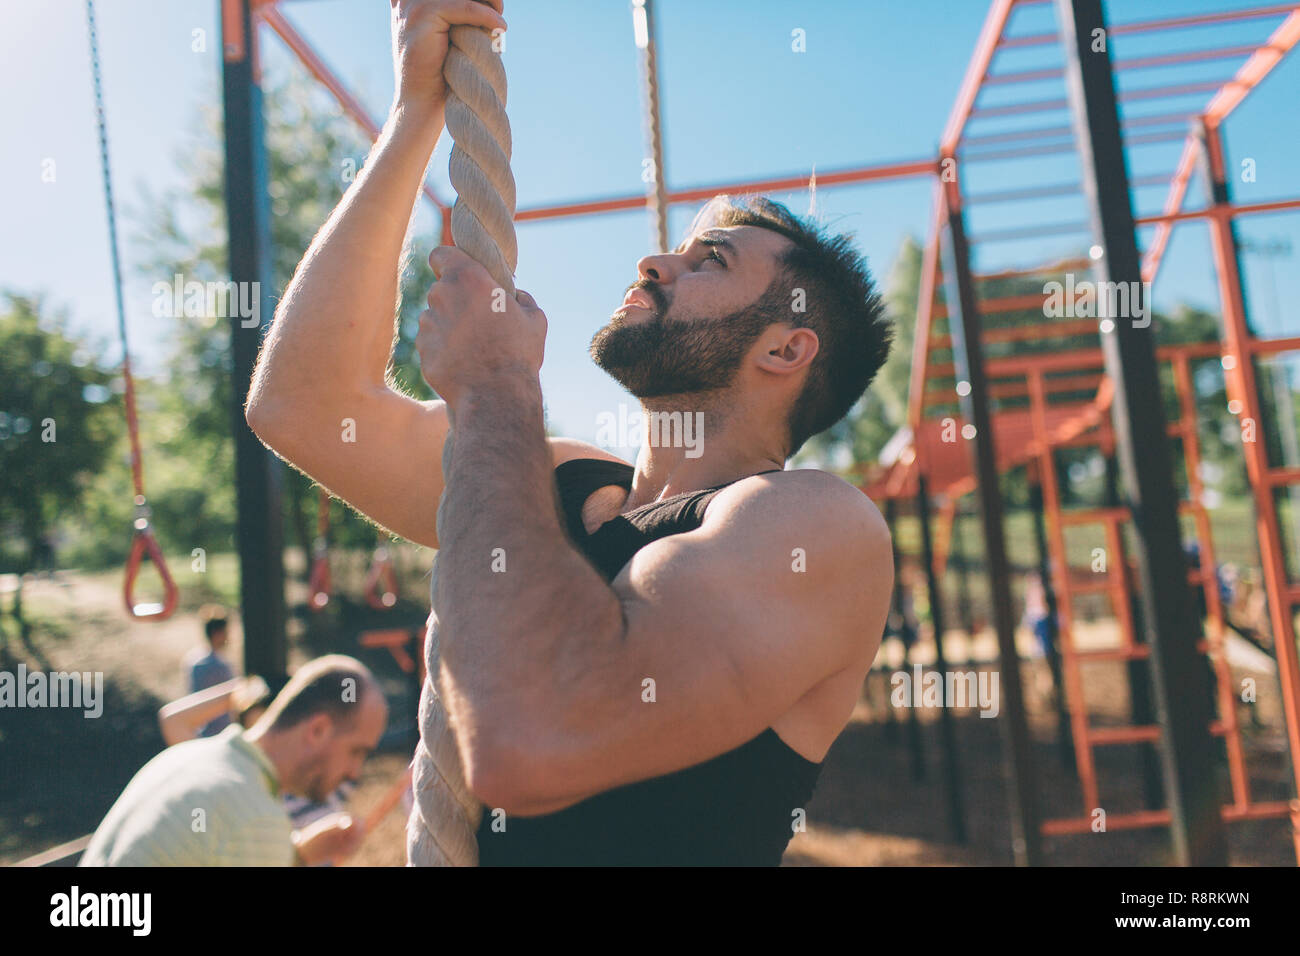 Bearded with black hair man climbing thick rope during fitness exercises in cross-fit training with. Strong muscular hands. - Stock Image